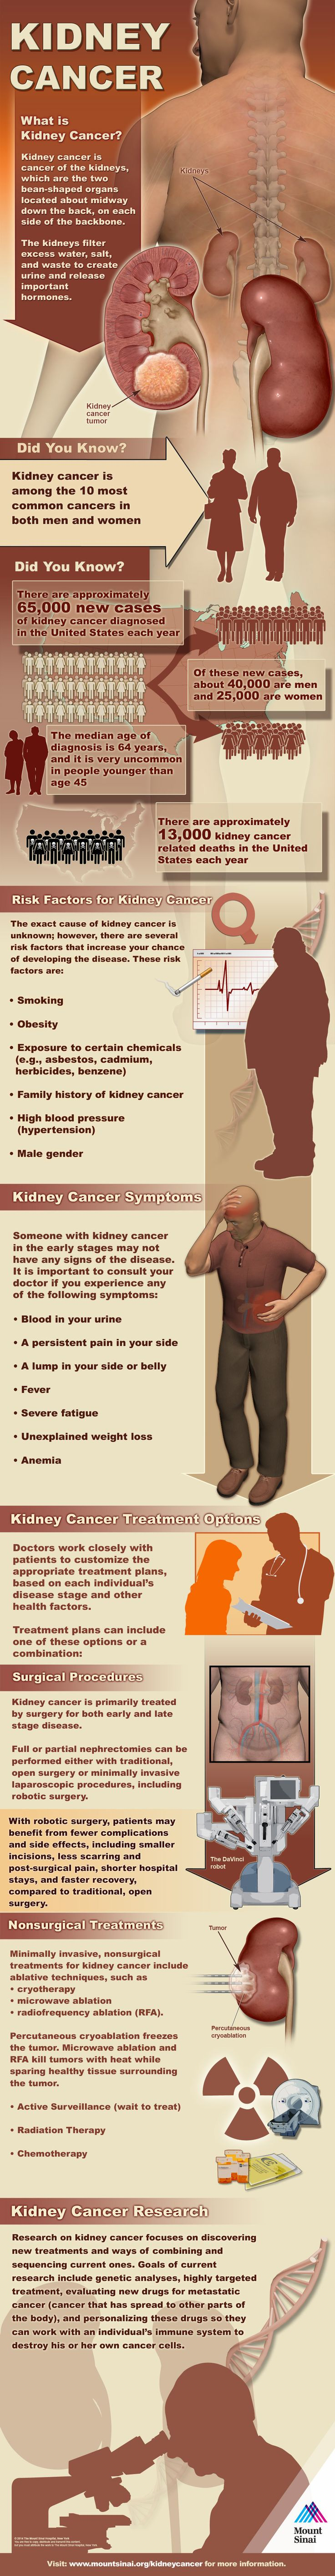 Kidney Cancer   #KidneyCancer #Health  #Cancer #infographic